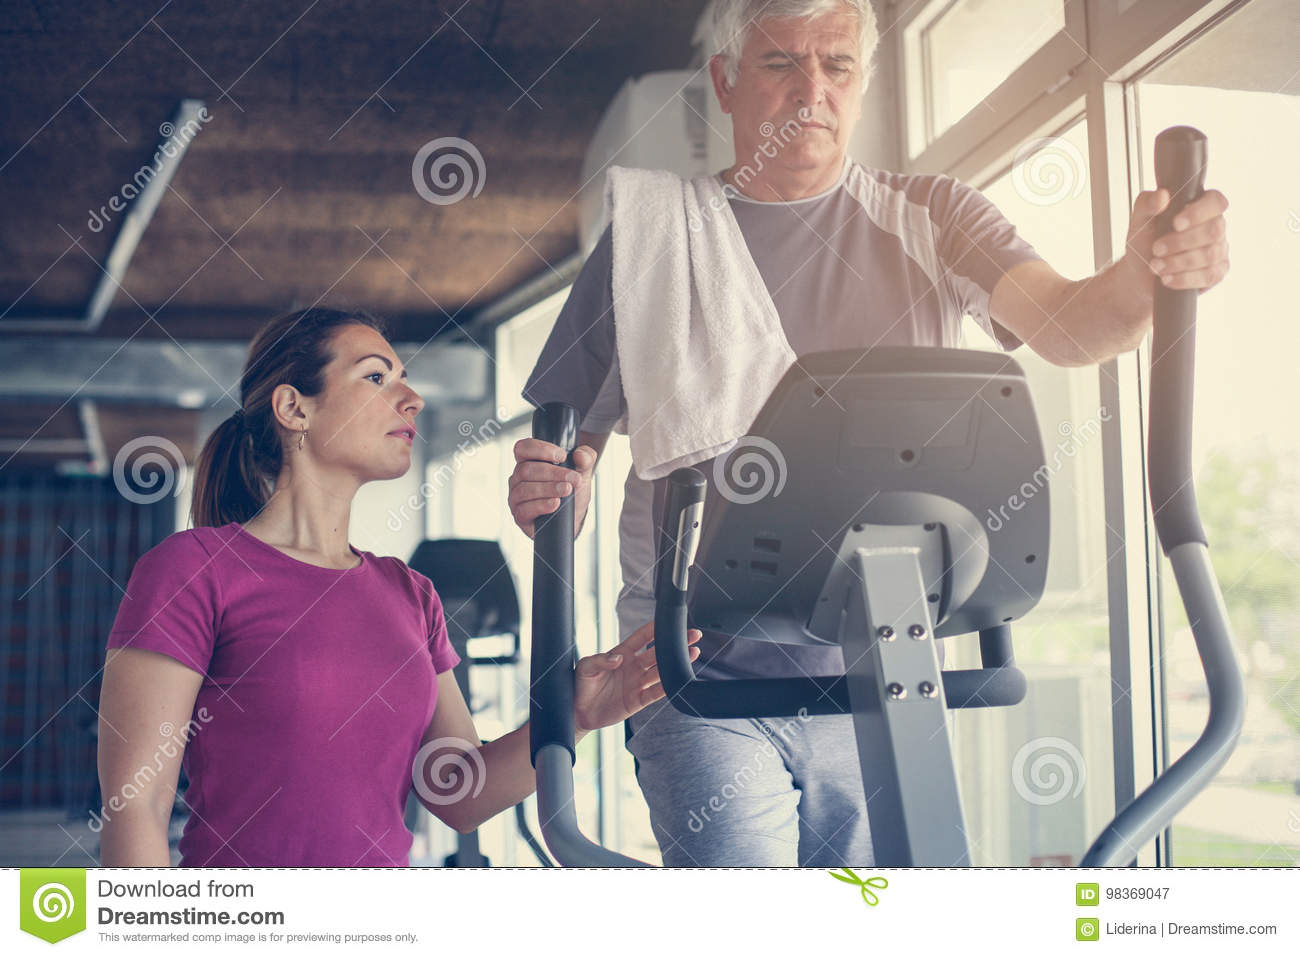 Senior man exercising on stationary bikes.